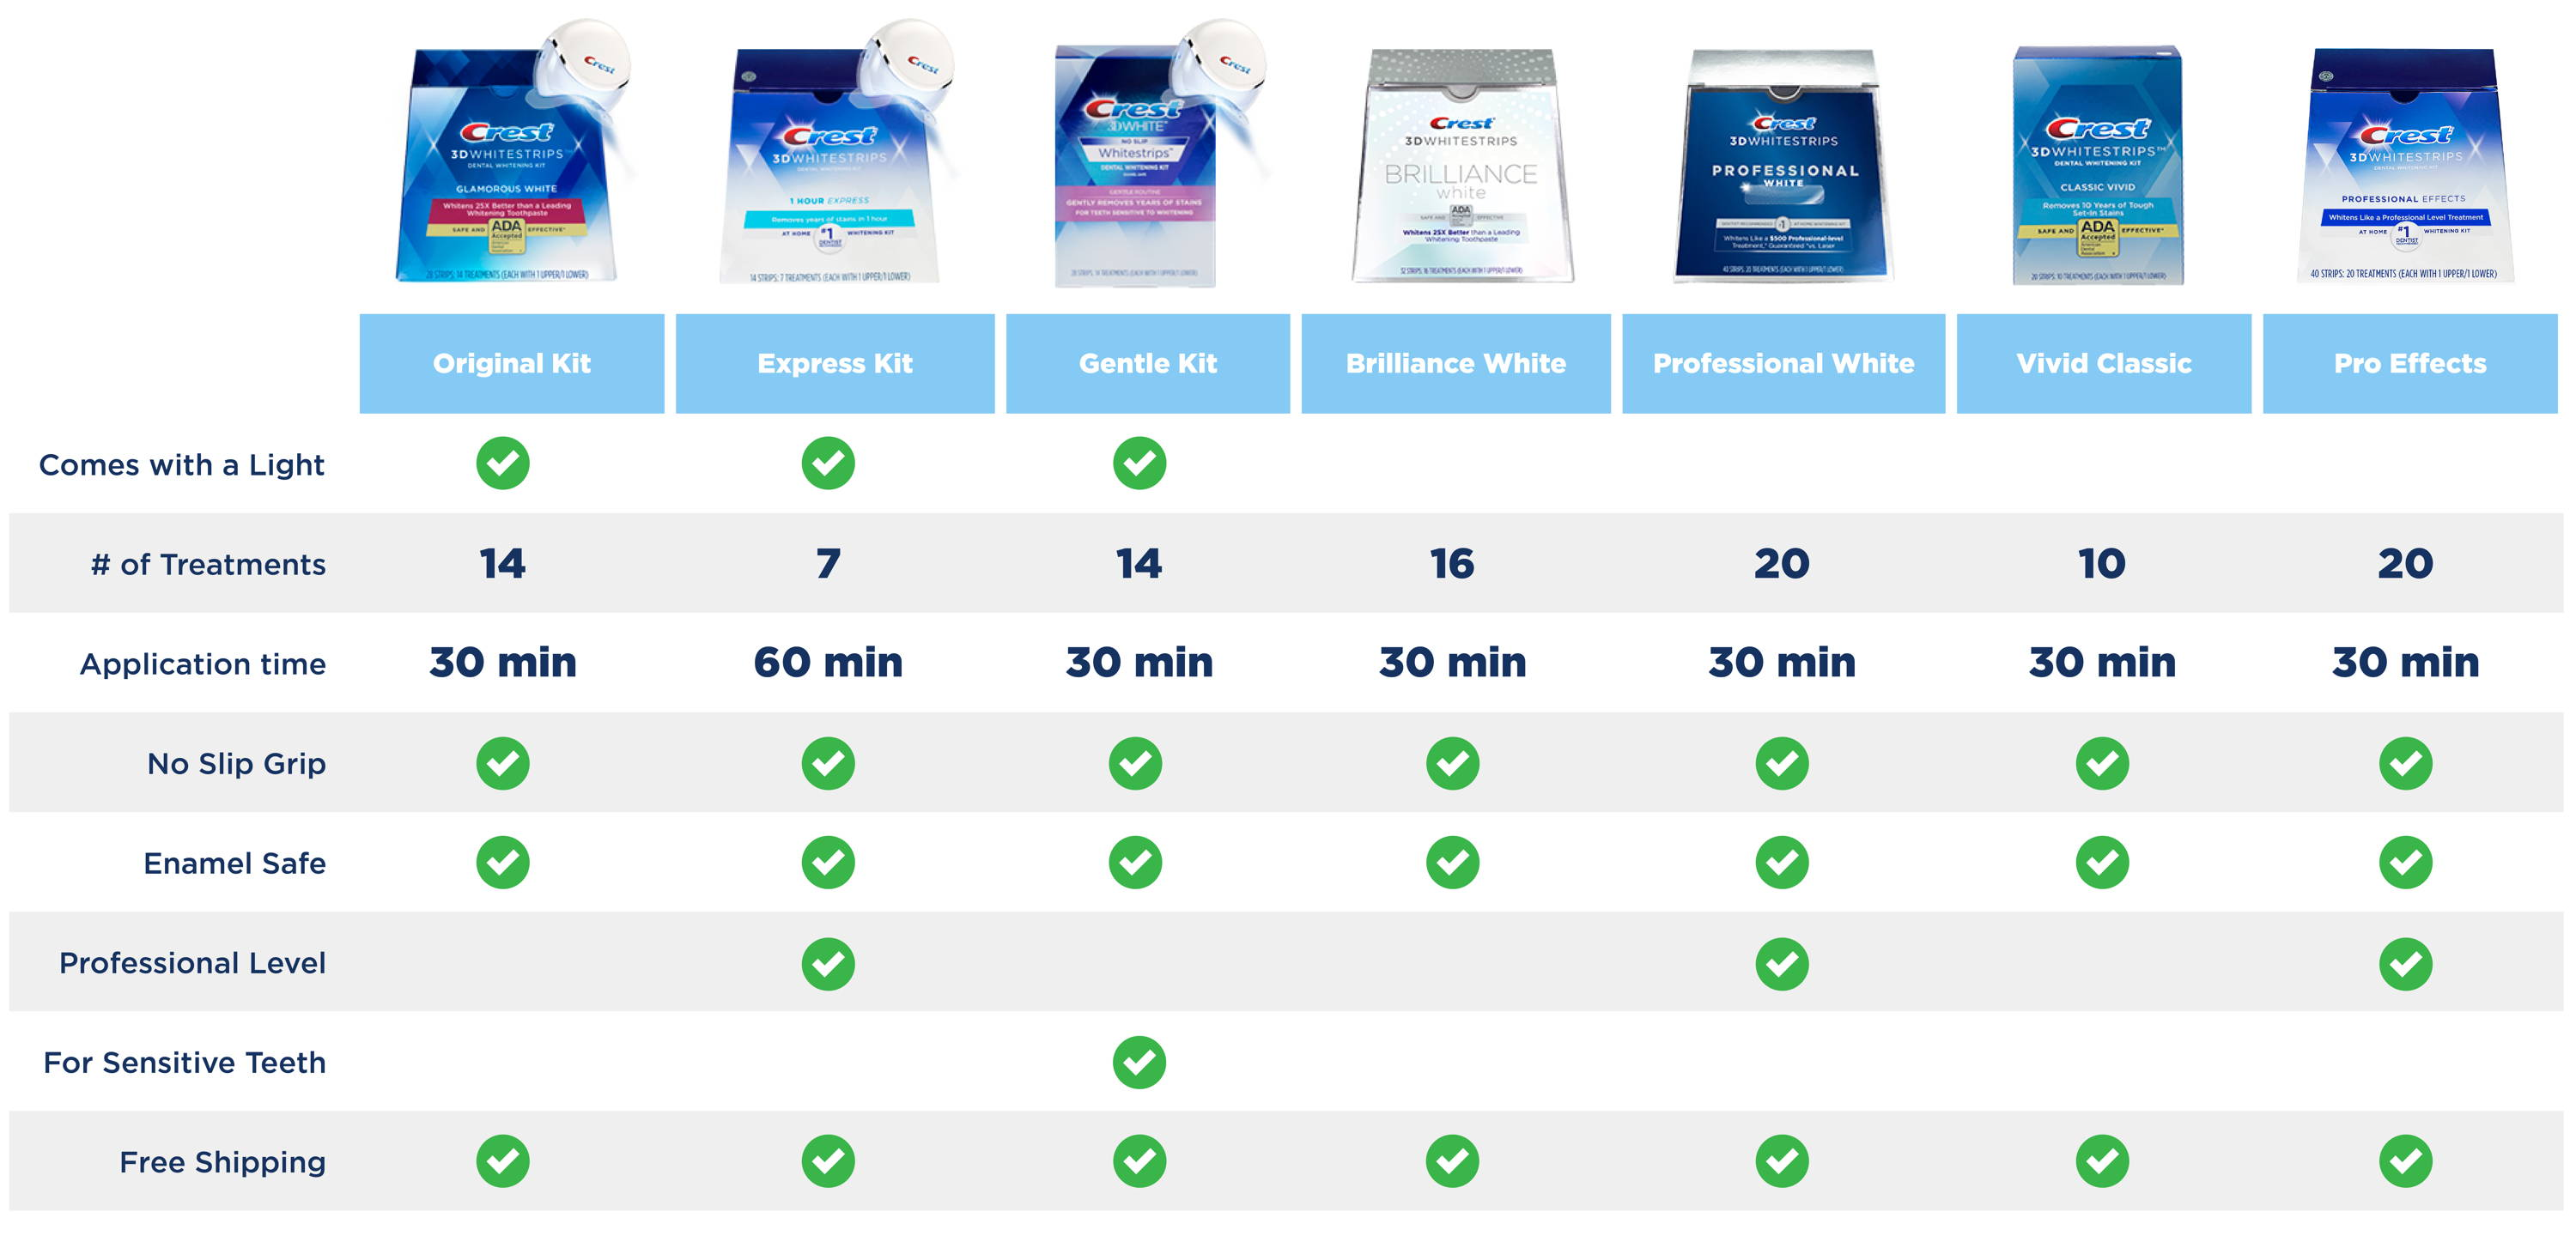 How To Choose The Best Crest 3d Whitestrips Crest White Smile